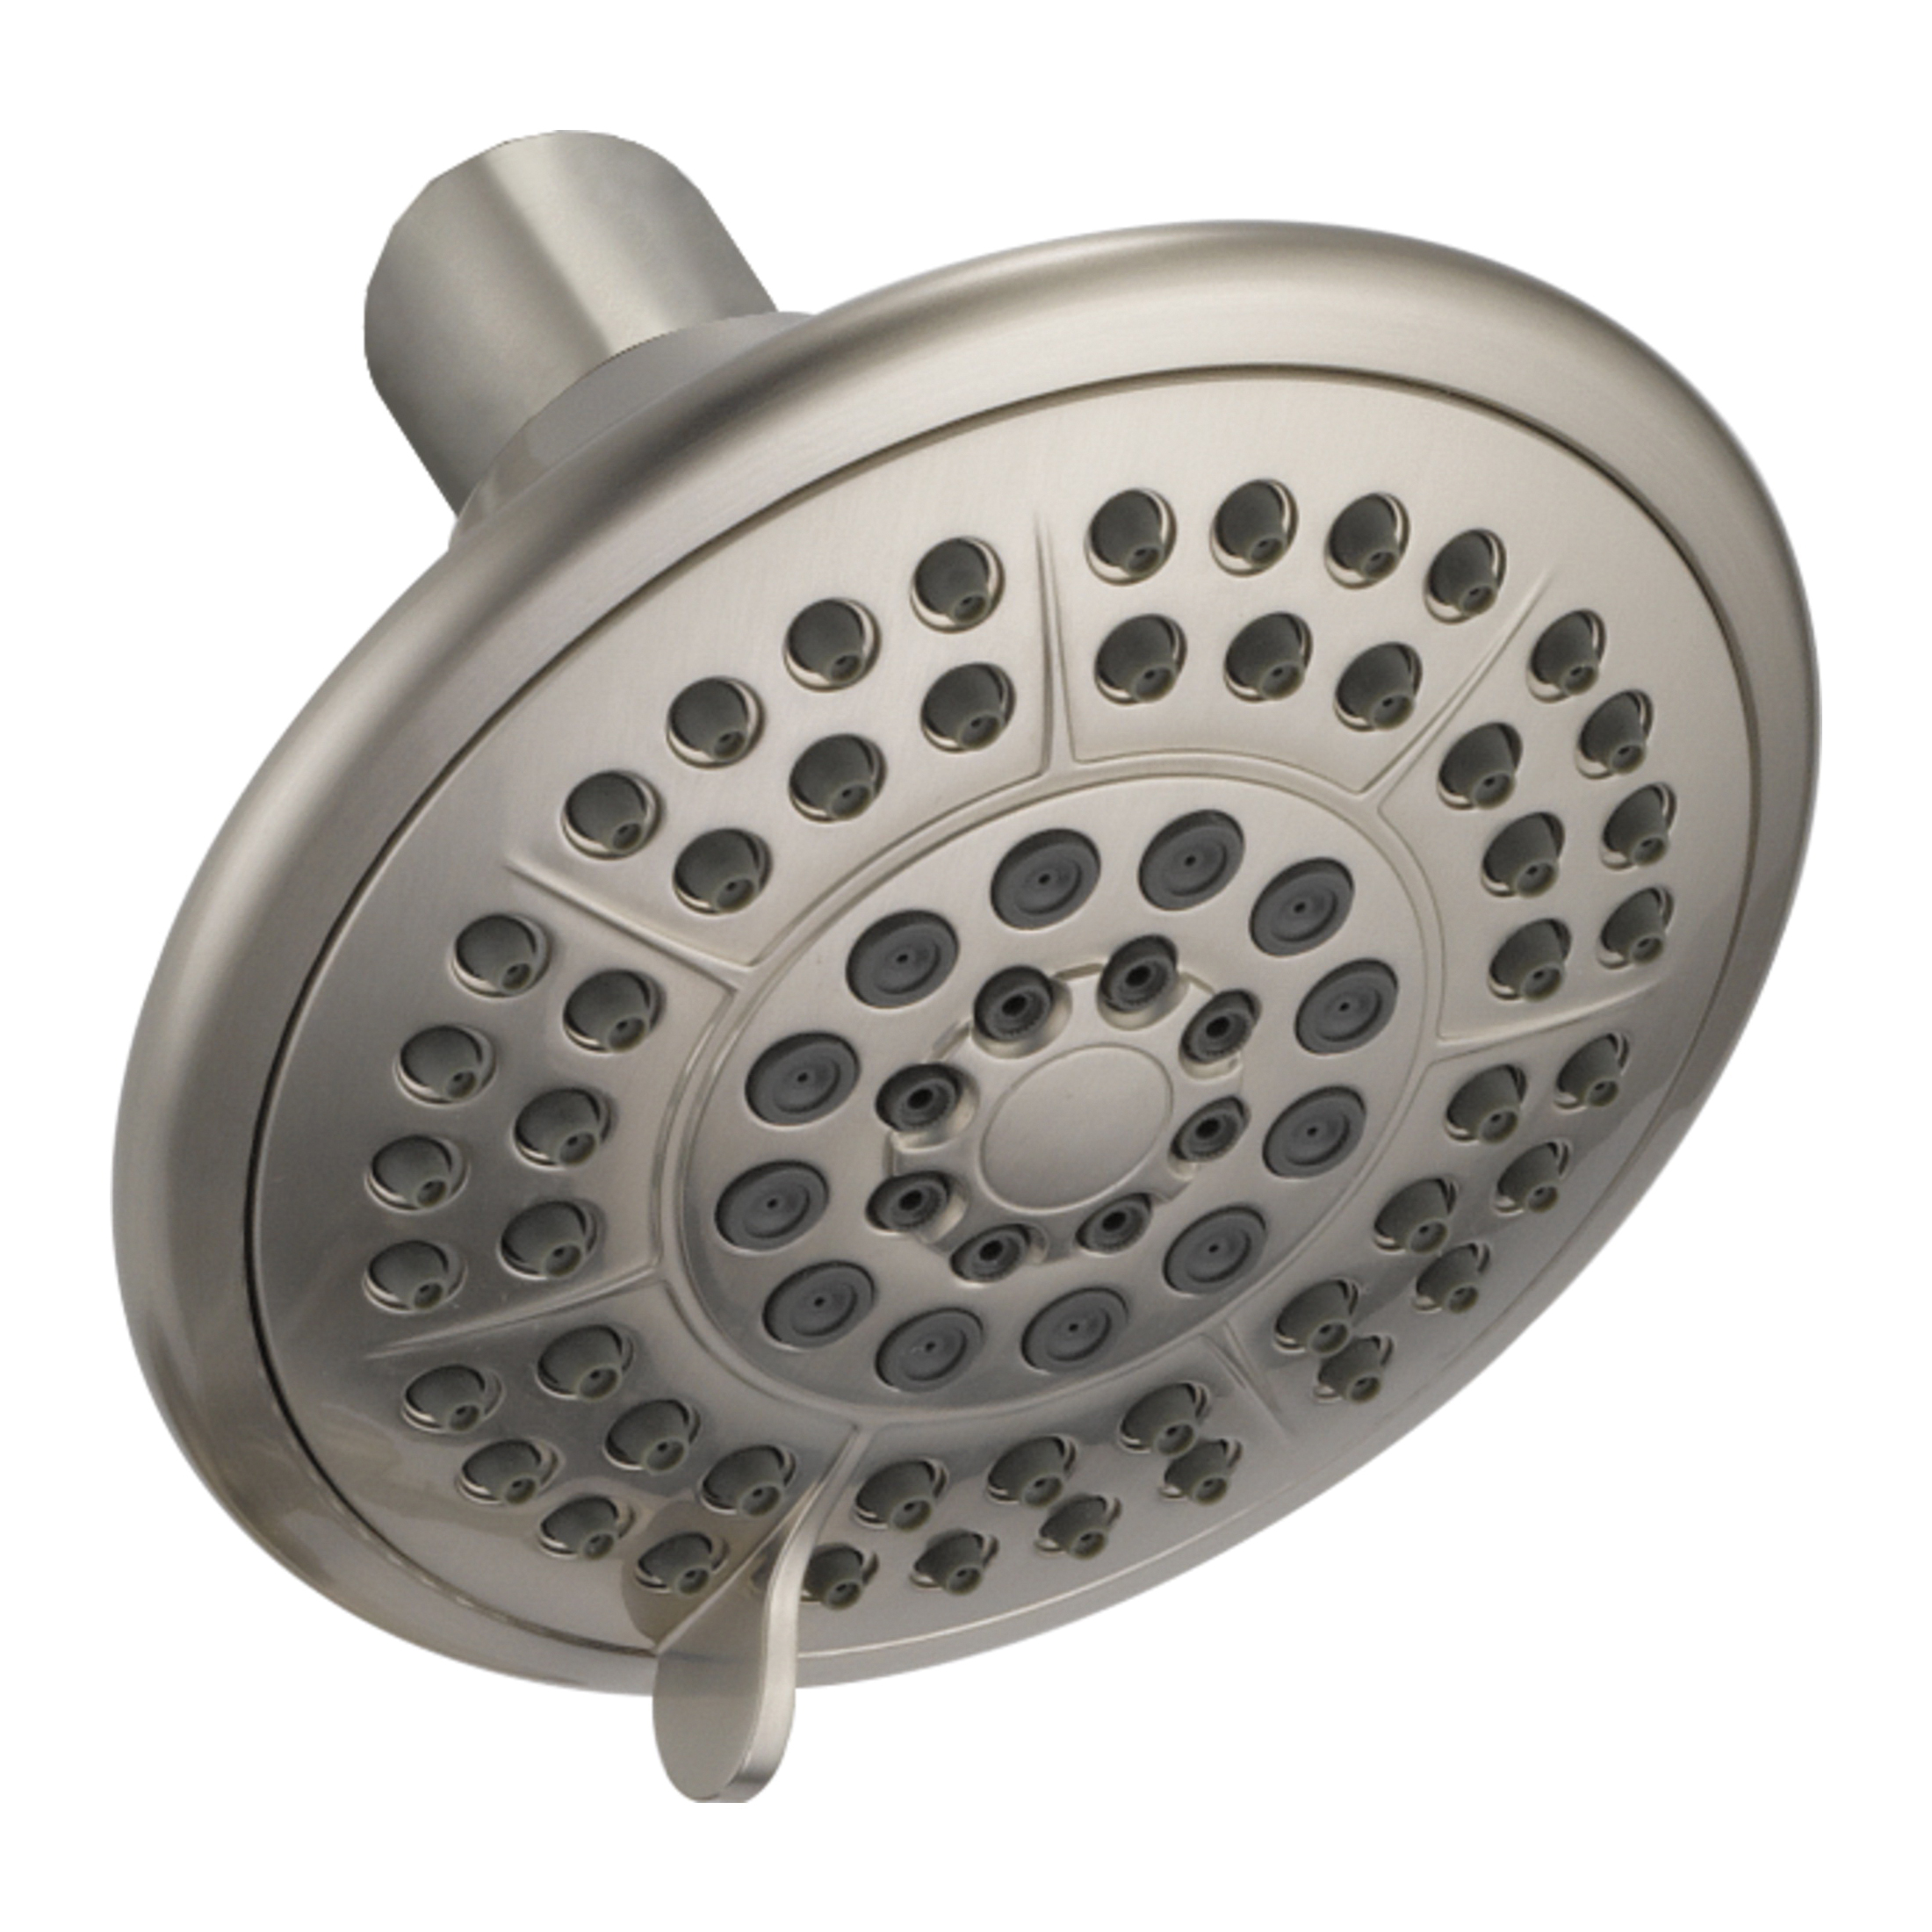 DELTA® RP78575SS Shower Head, 2 gpm, 5 Sprays, Wall Mount, Import